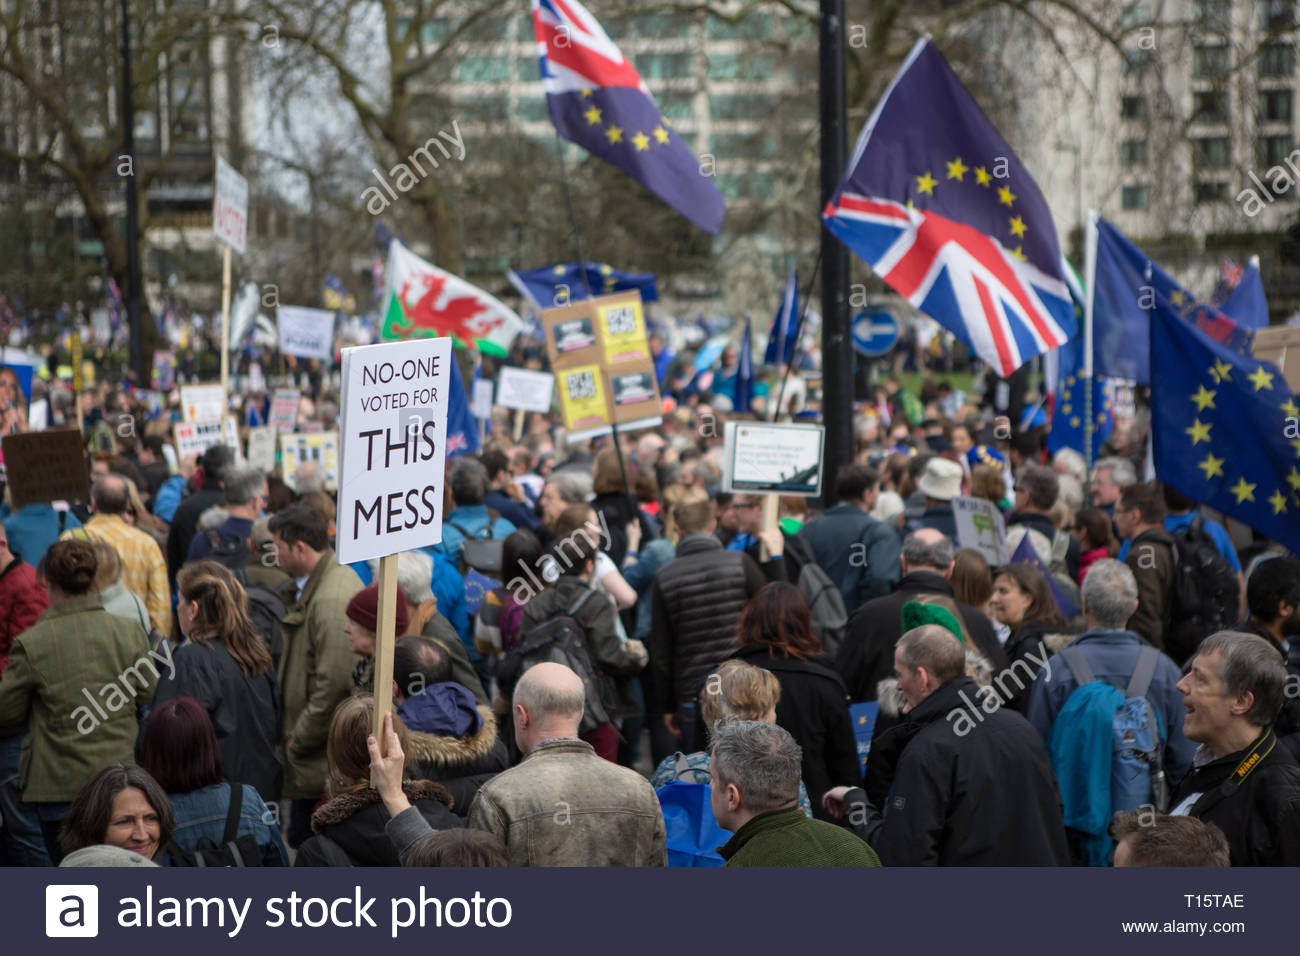 London, UK. 23rd Mar 2019. The People's Vote March For The Future on 23rd of March 2019 in London, United Kingdom. More than 1000,000 people marched to Westminster Parliament to demand their democratic voice to be heard in a landmark demonstration billed as the most important protest of a generation. As the date of the UK's Brexit from the European Union, the protesters gathered in their tens of thousands to make political leaders take notice and to give the British public a vote on the final Brexit deal. Credit: Awakening/Alamy Live News Stock Photo